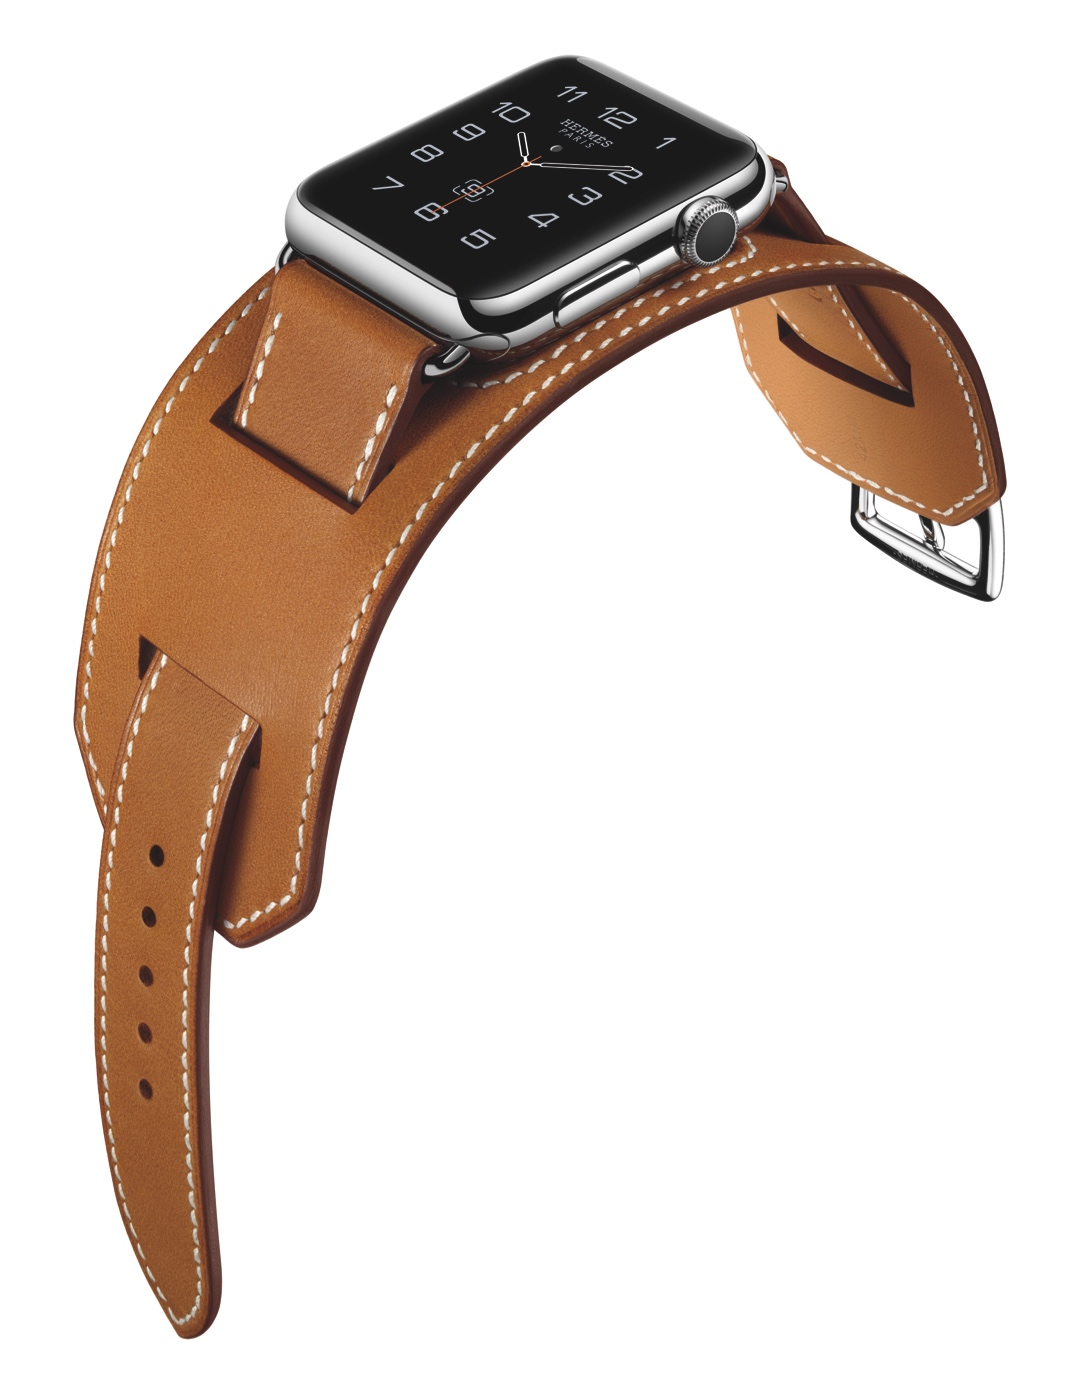 Apple-Watch-Hermes-Cuff.jpg